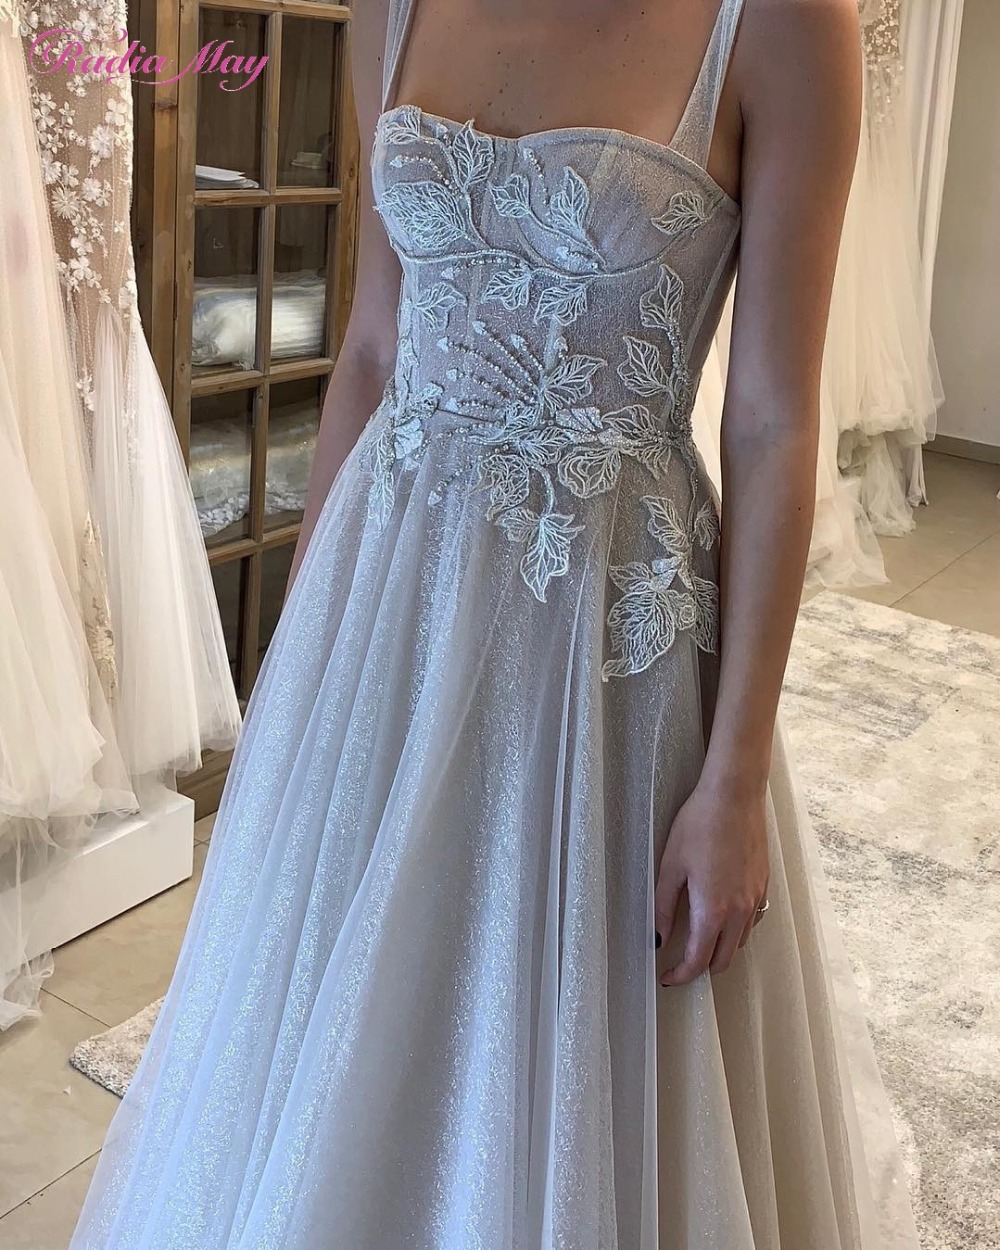 Vintage Wedding Dresses Greenwich: Vintage Lace Embroidery Bling Wedding Dress With Straps